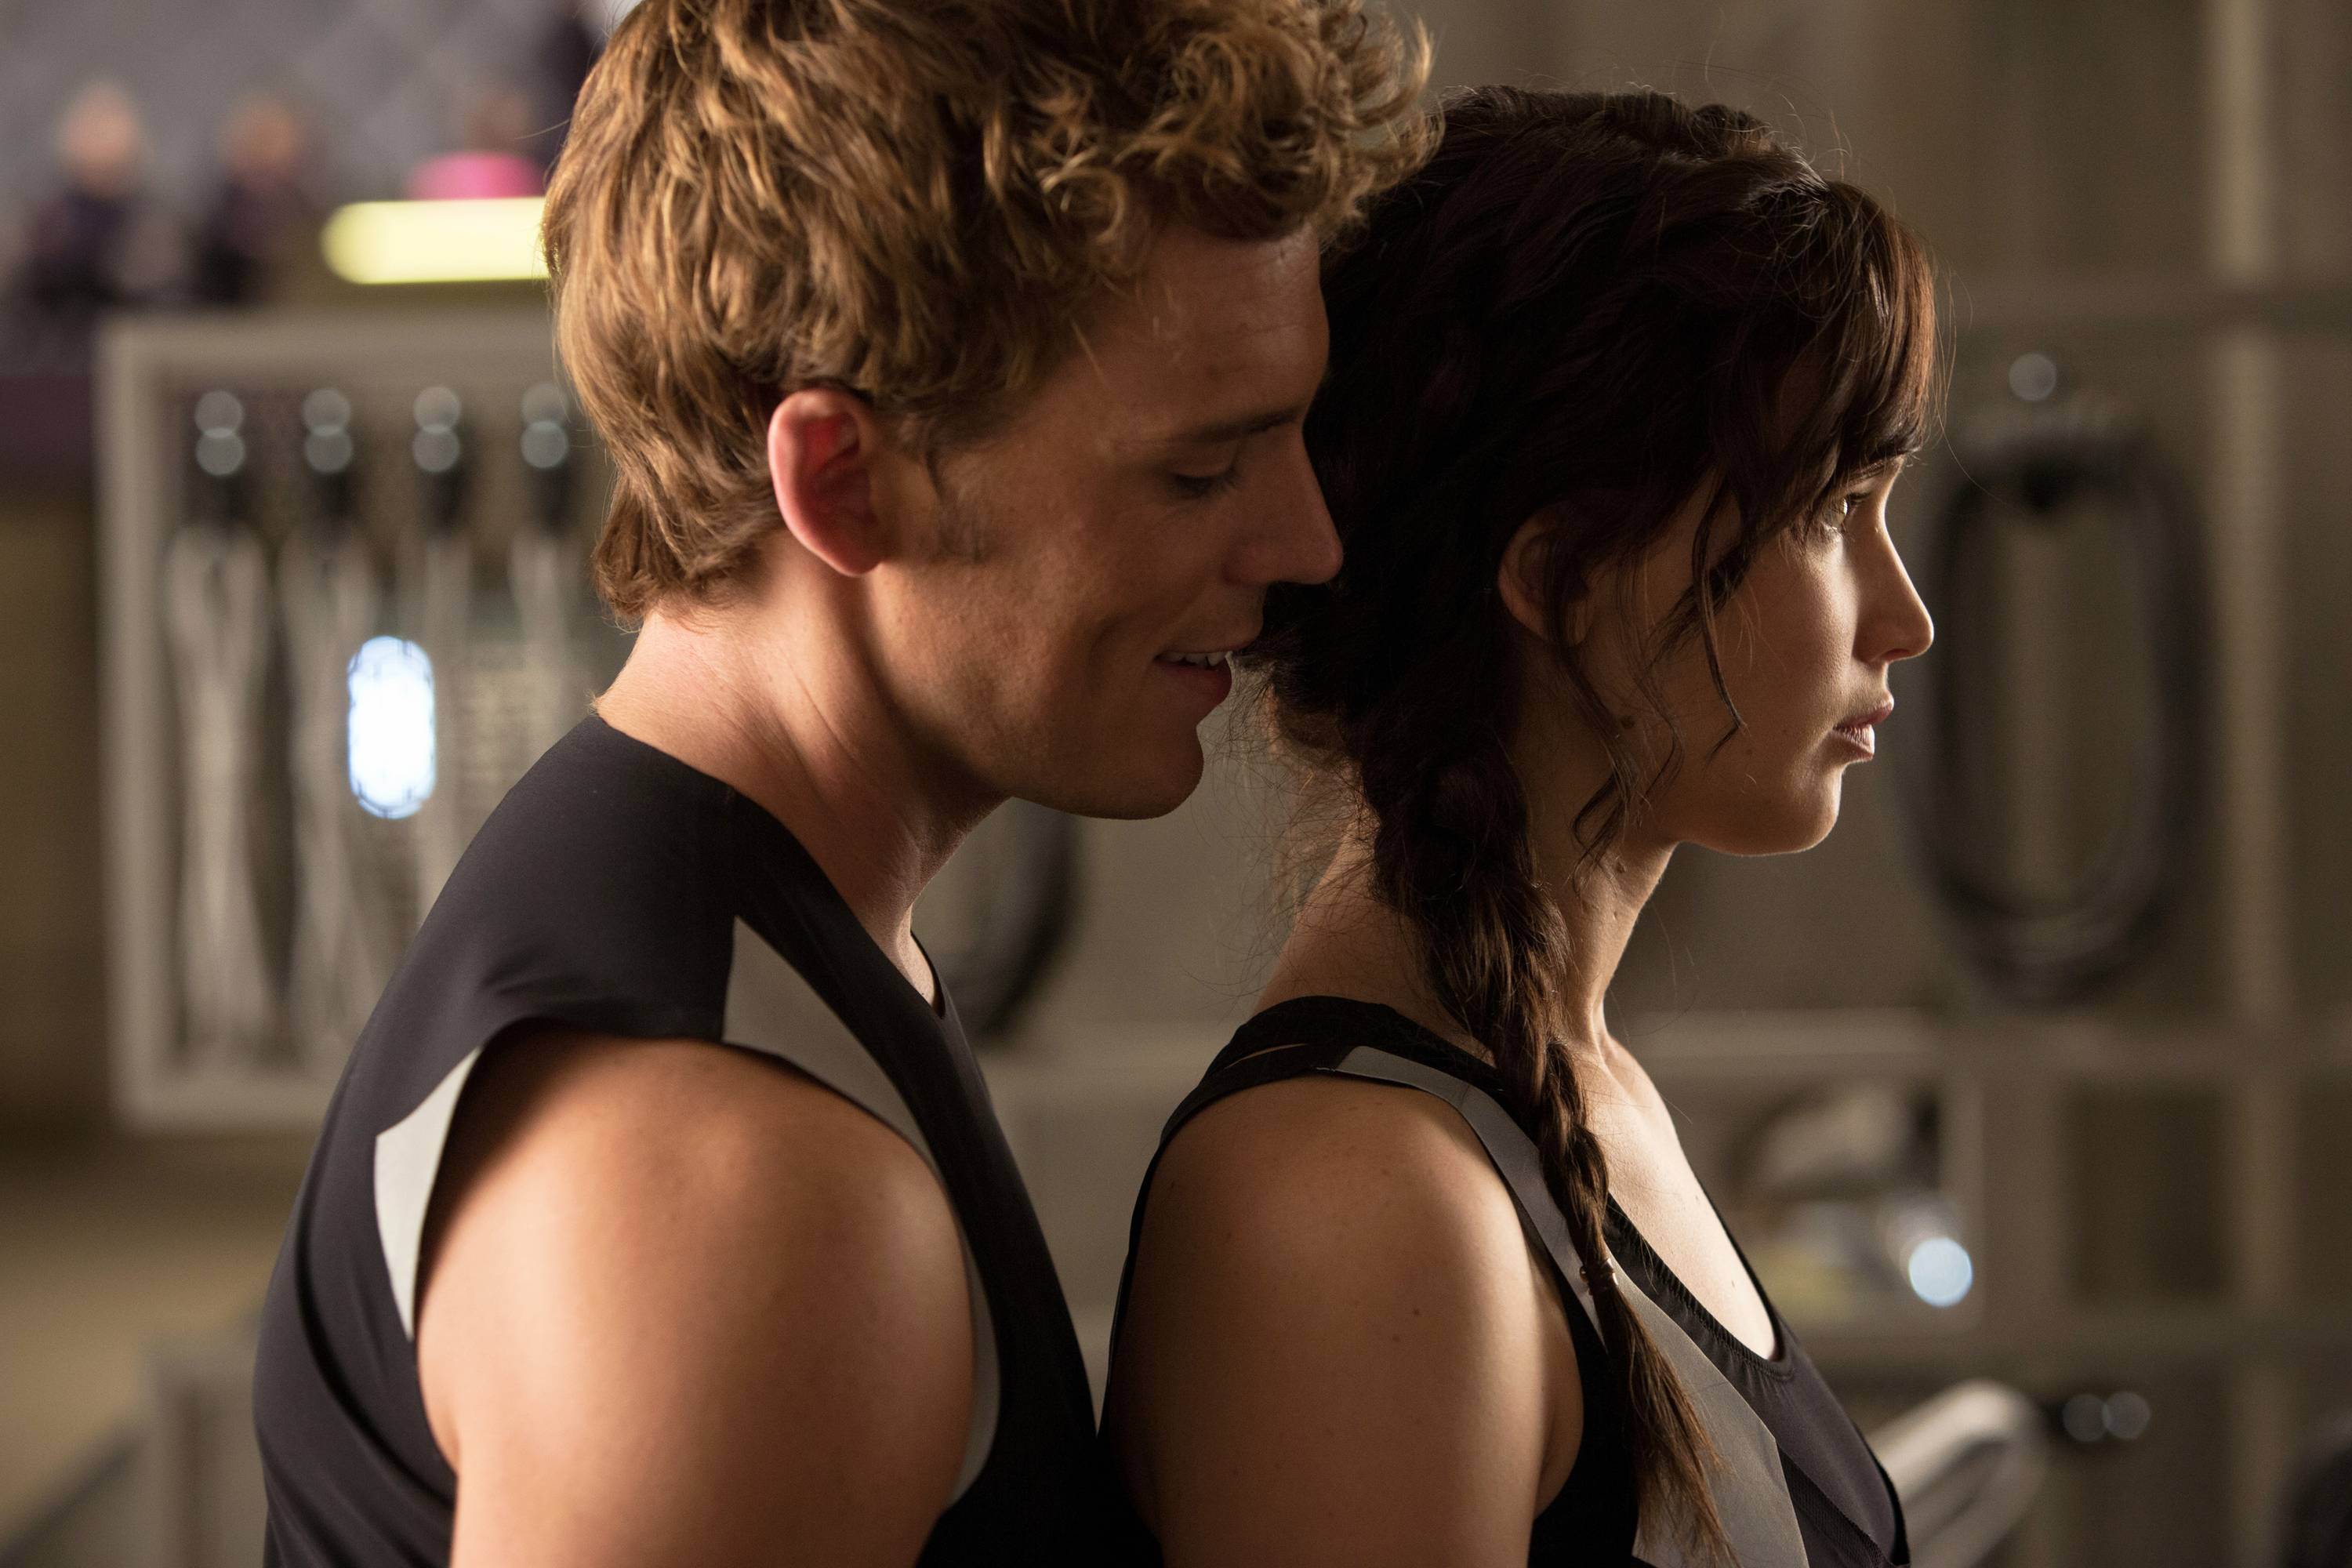 The hunger games movie catching fire-stills [hq]